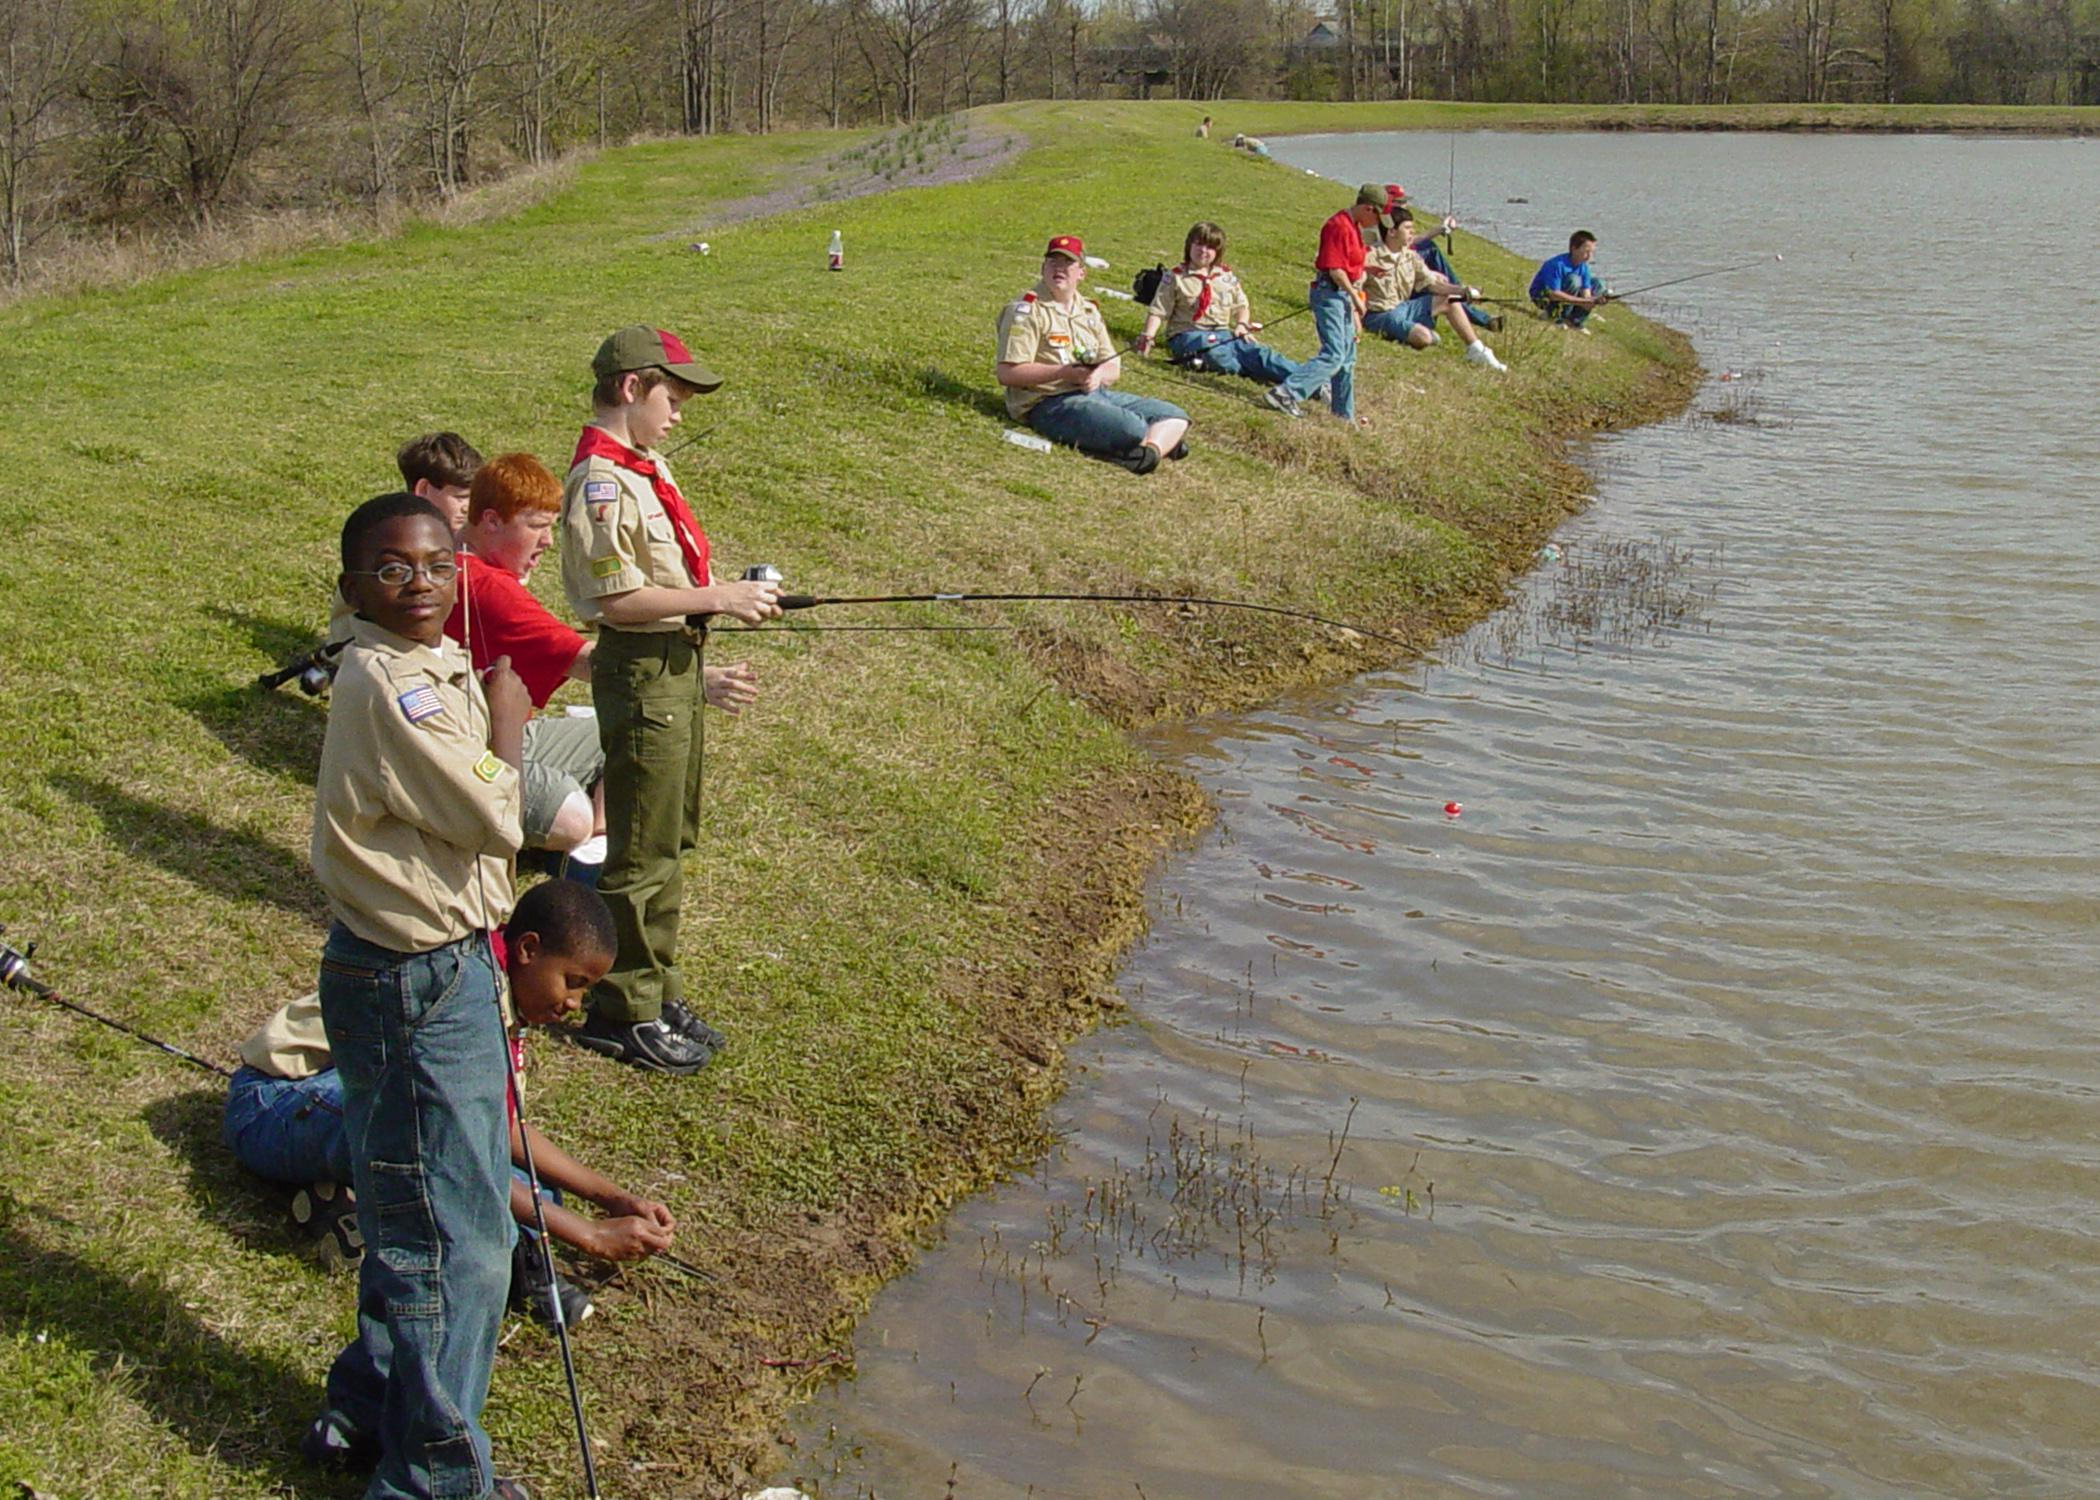 Before fertilizing a pond, be sure there will enough fishing to take care of the increased fish population. (Photo by MSU Extension/Wes Neal)